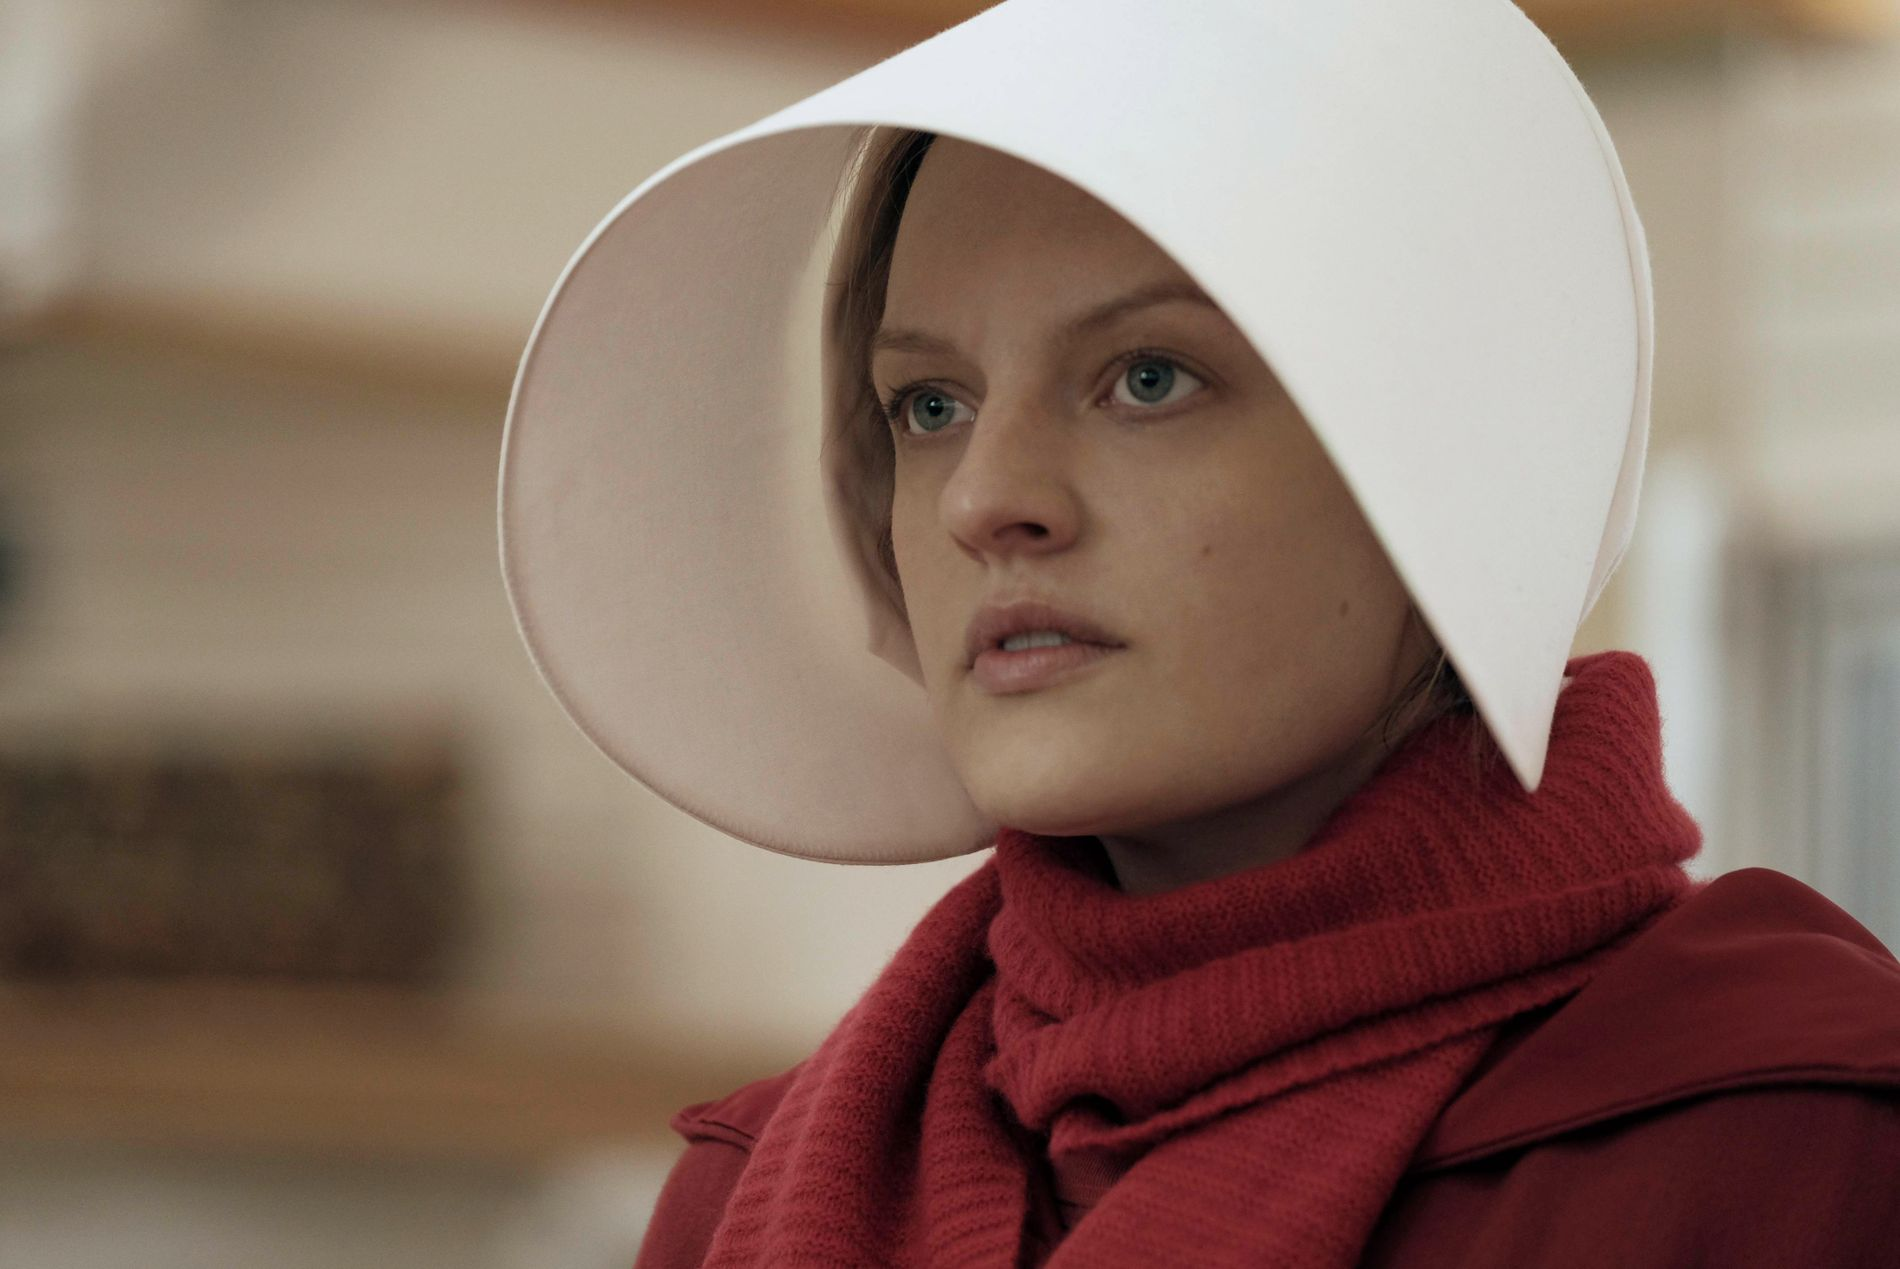 NOMINERT: Både «The Handmaid's Tale» og Elisabeth Moss er nominert.